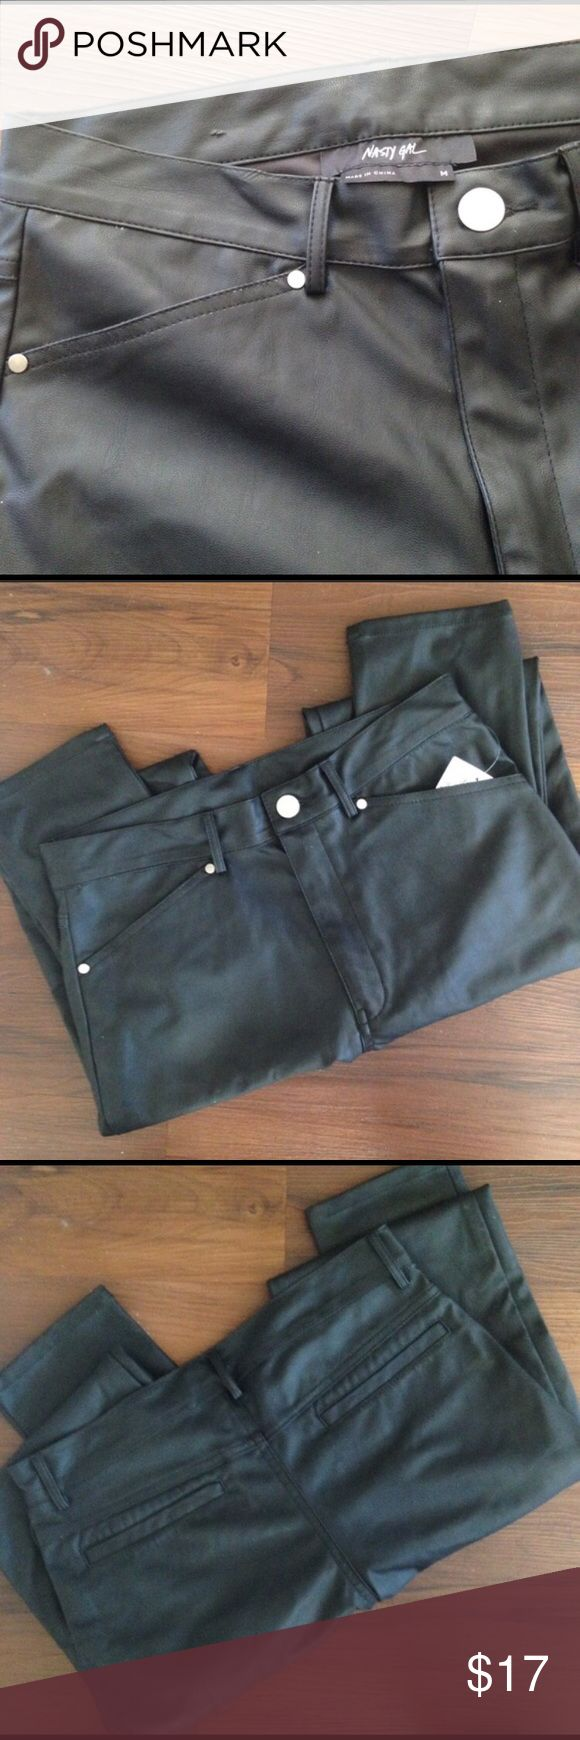 Nasty Gal faux leather pants Faux leather pants. Size medium. Purchased on here and do not fit me. Small blemish on inside waistband (as pictured.) fit more like a small. Nasty Gal Pants Straight Leg